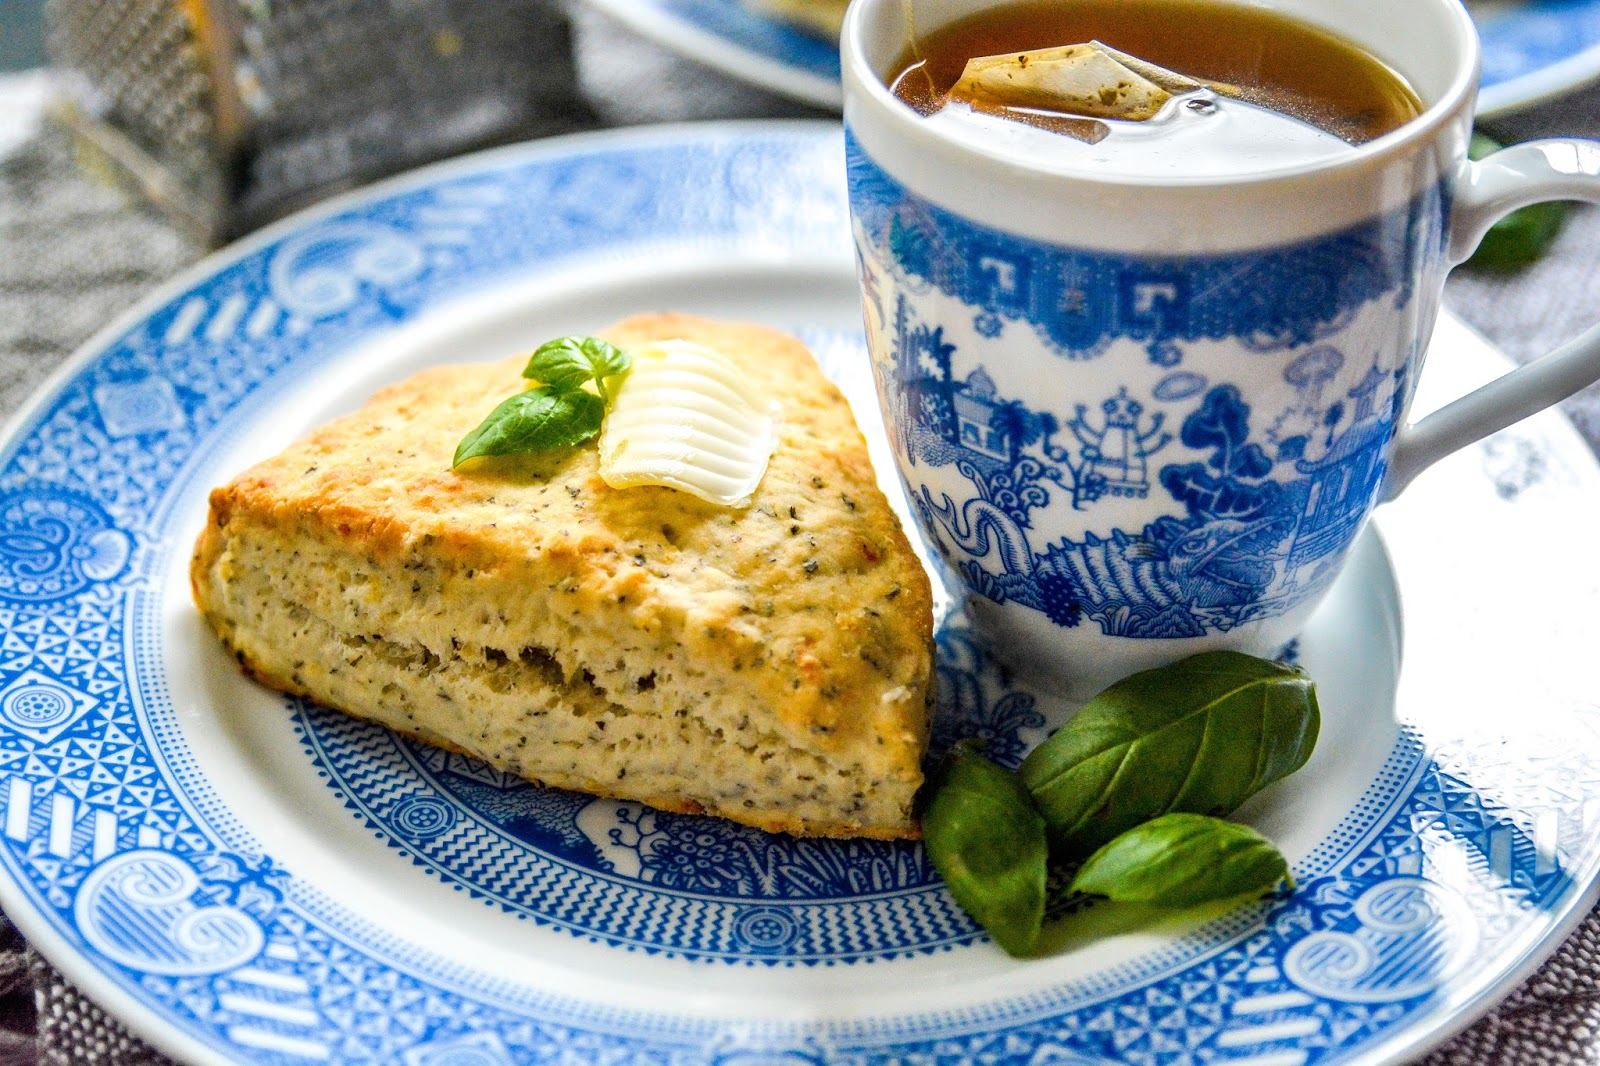 Aged Cheddar and Basil Scones